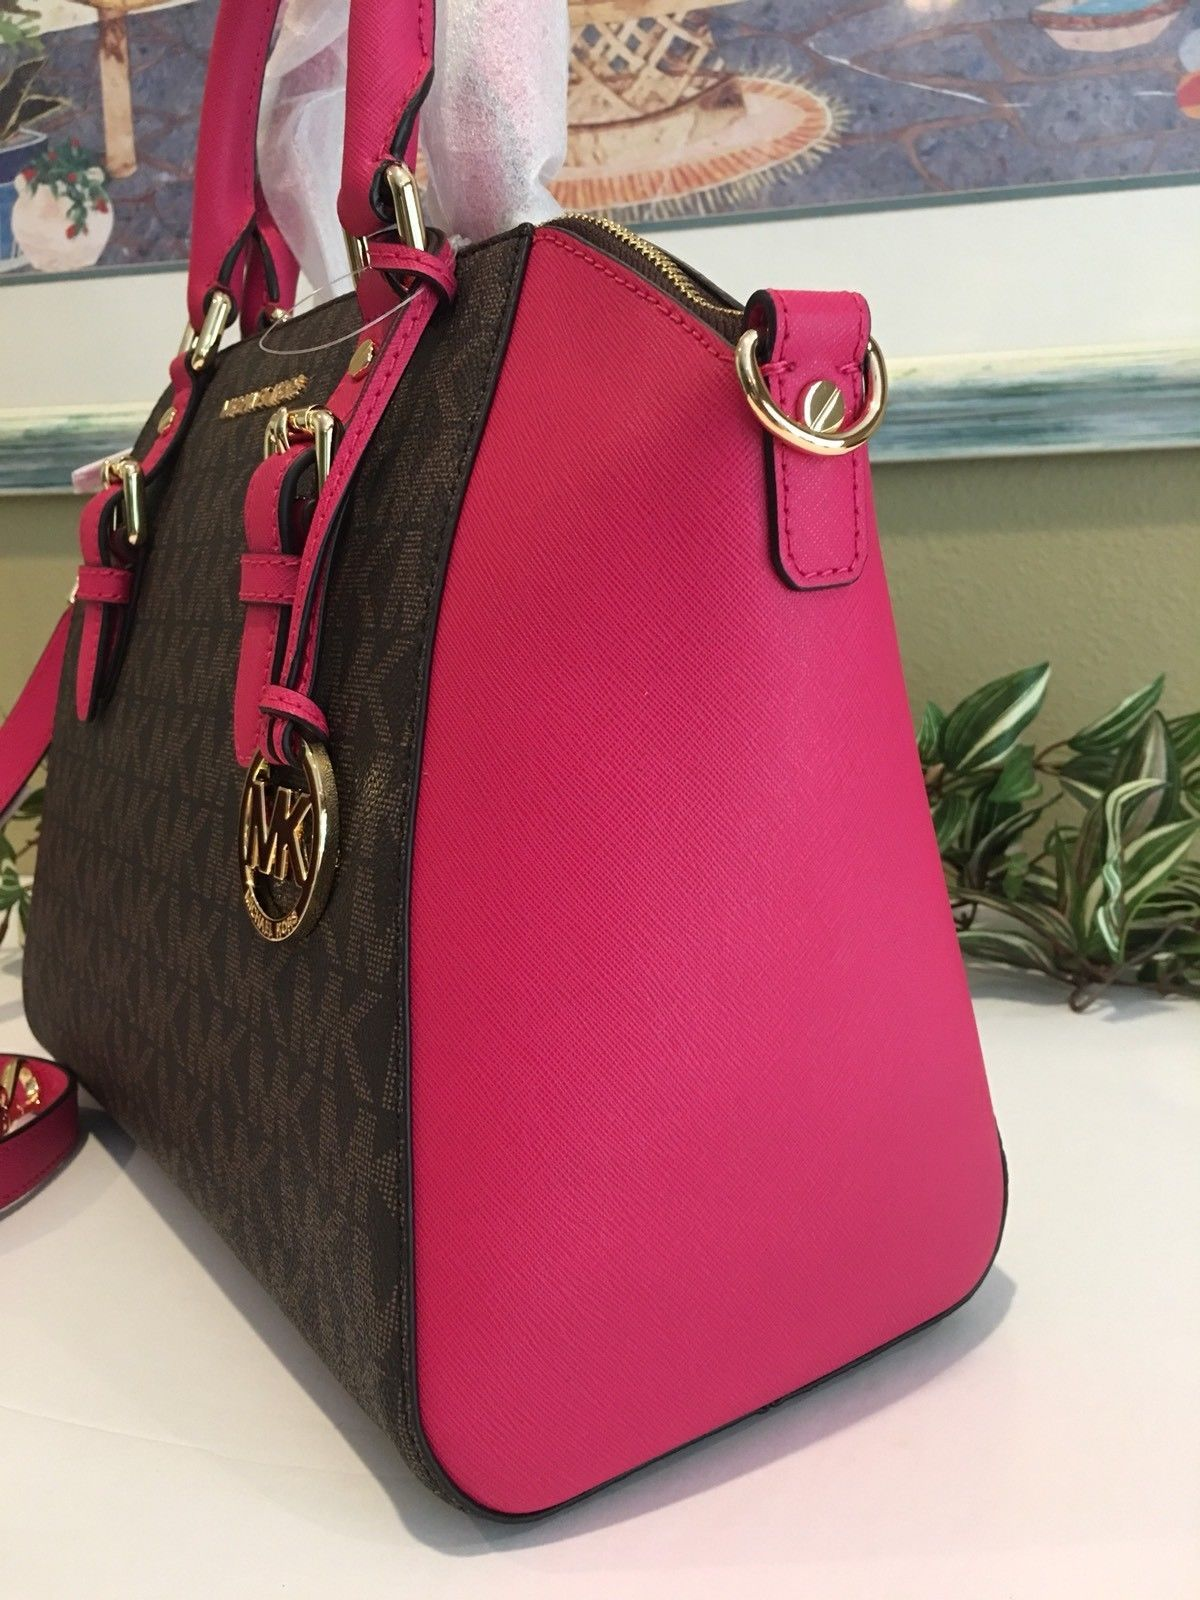 7817a5364ddc MICHAEL KORS CIARA LARGE ZIP SATCHEL BAG TOTE BROWN PINK SIGNATURE LEATHER  $448